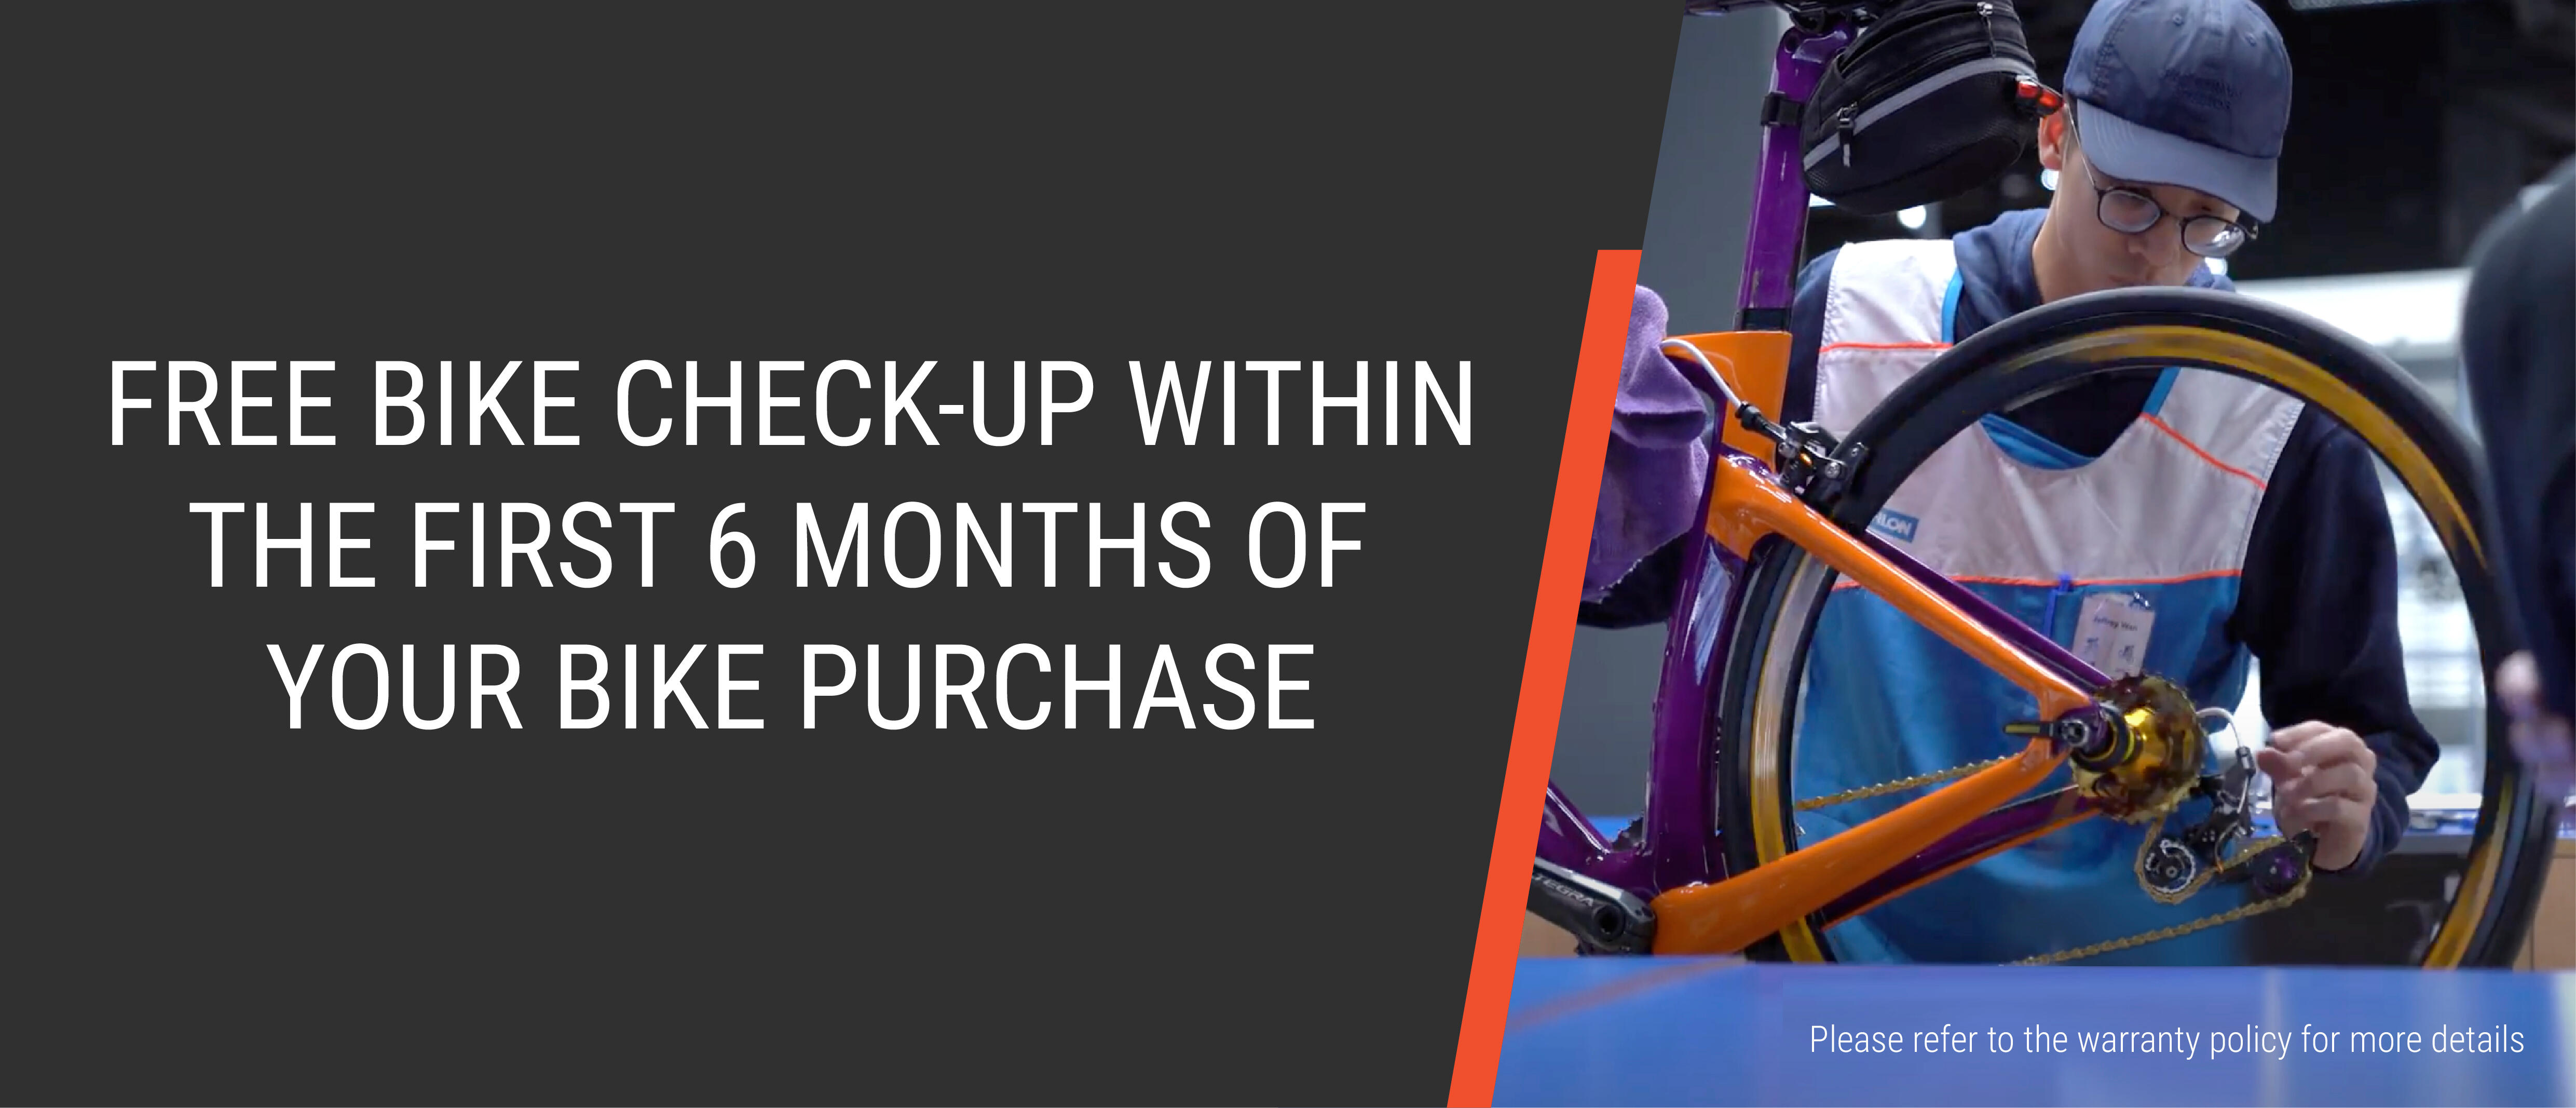 Decathlon Cycling Workshop - Free bike check-up within the first 6 months of purchase